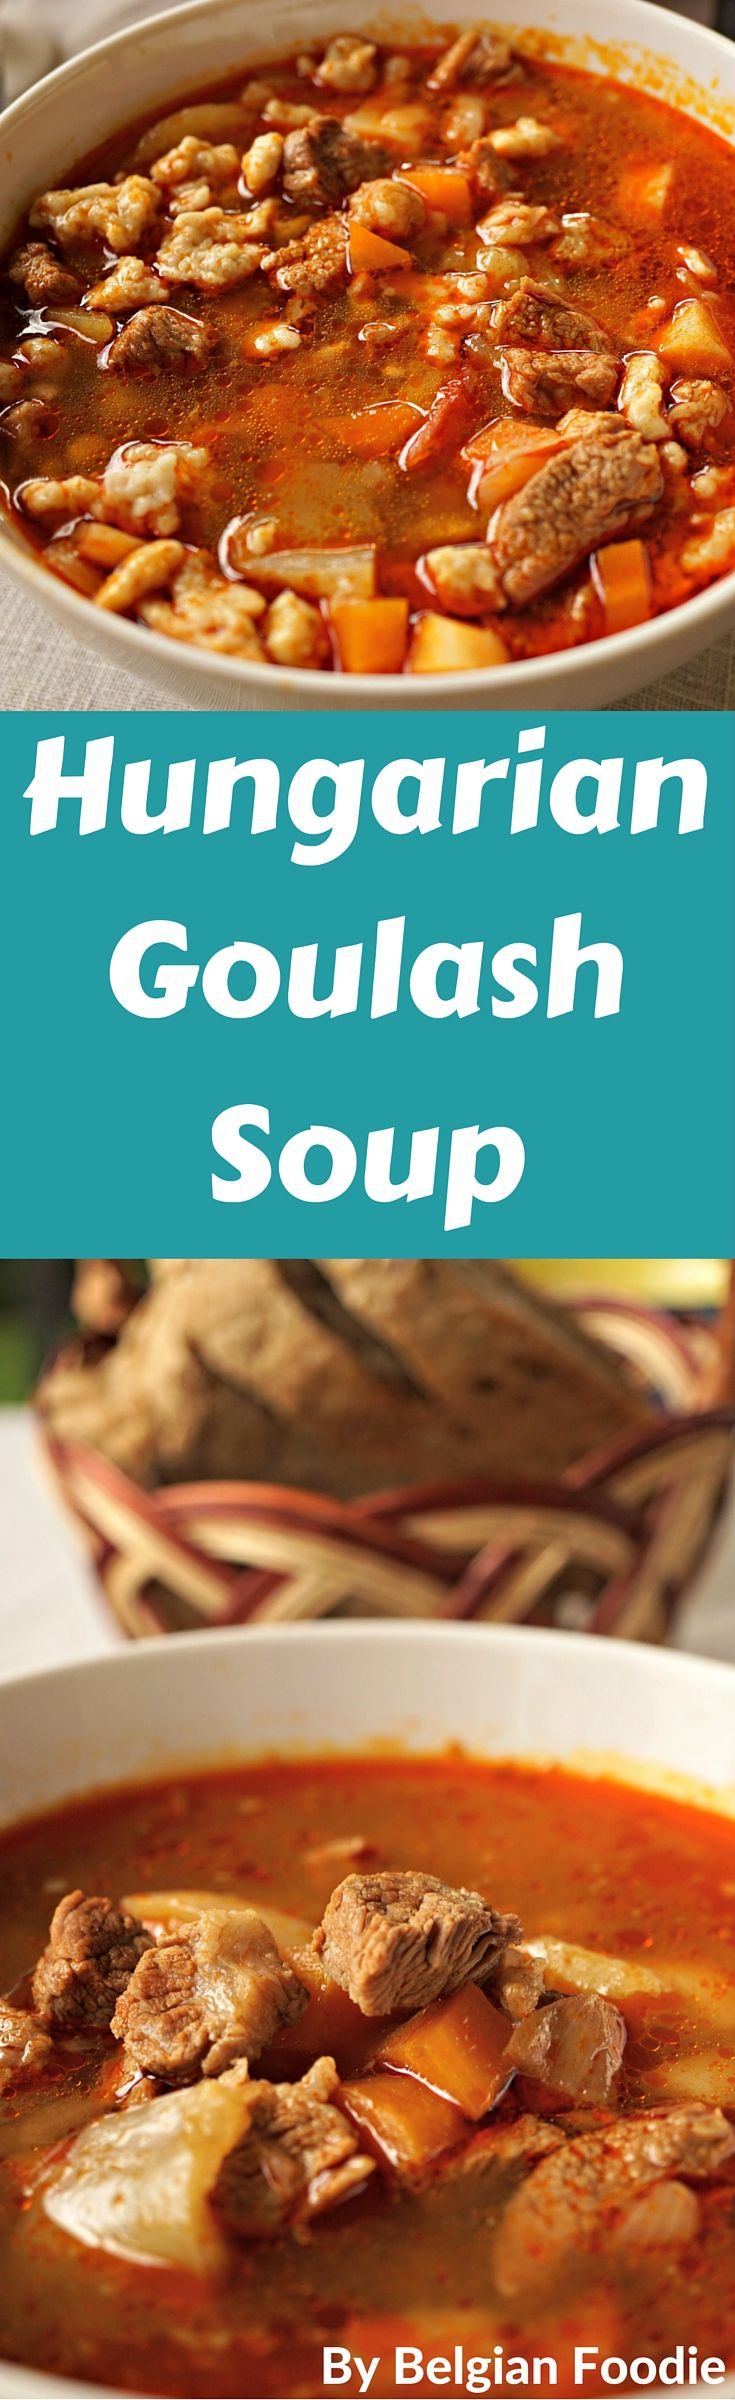 Hungarian Goulash Soup Made at Home for special occasions or any meal when you are looking for a little comfort!